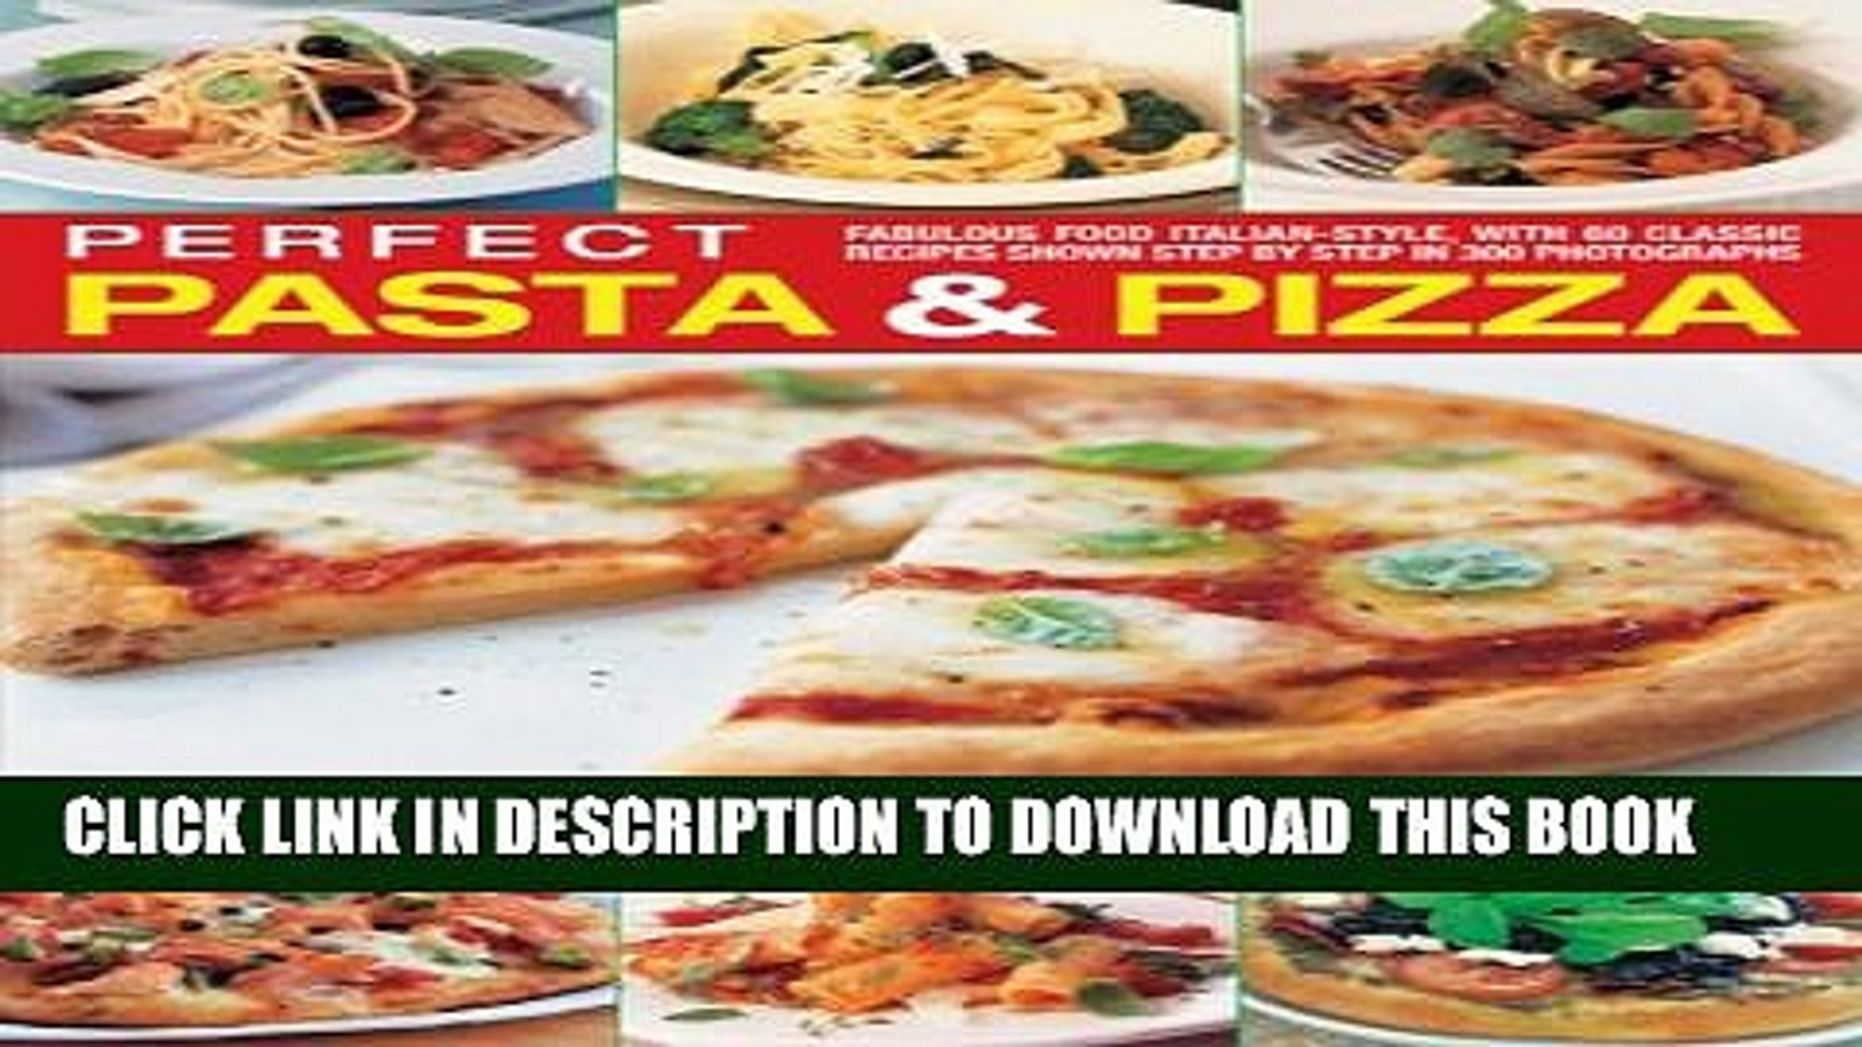 [PDF] Perfect Pasta and Pizza: Fabulous food Italian-style, with 9 classic  recipes shown step by